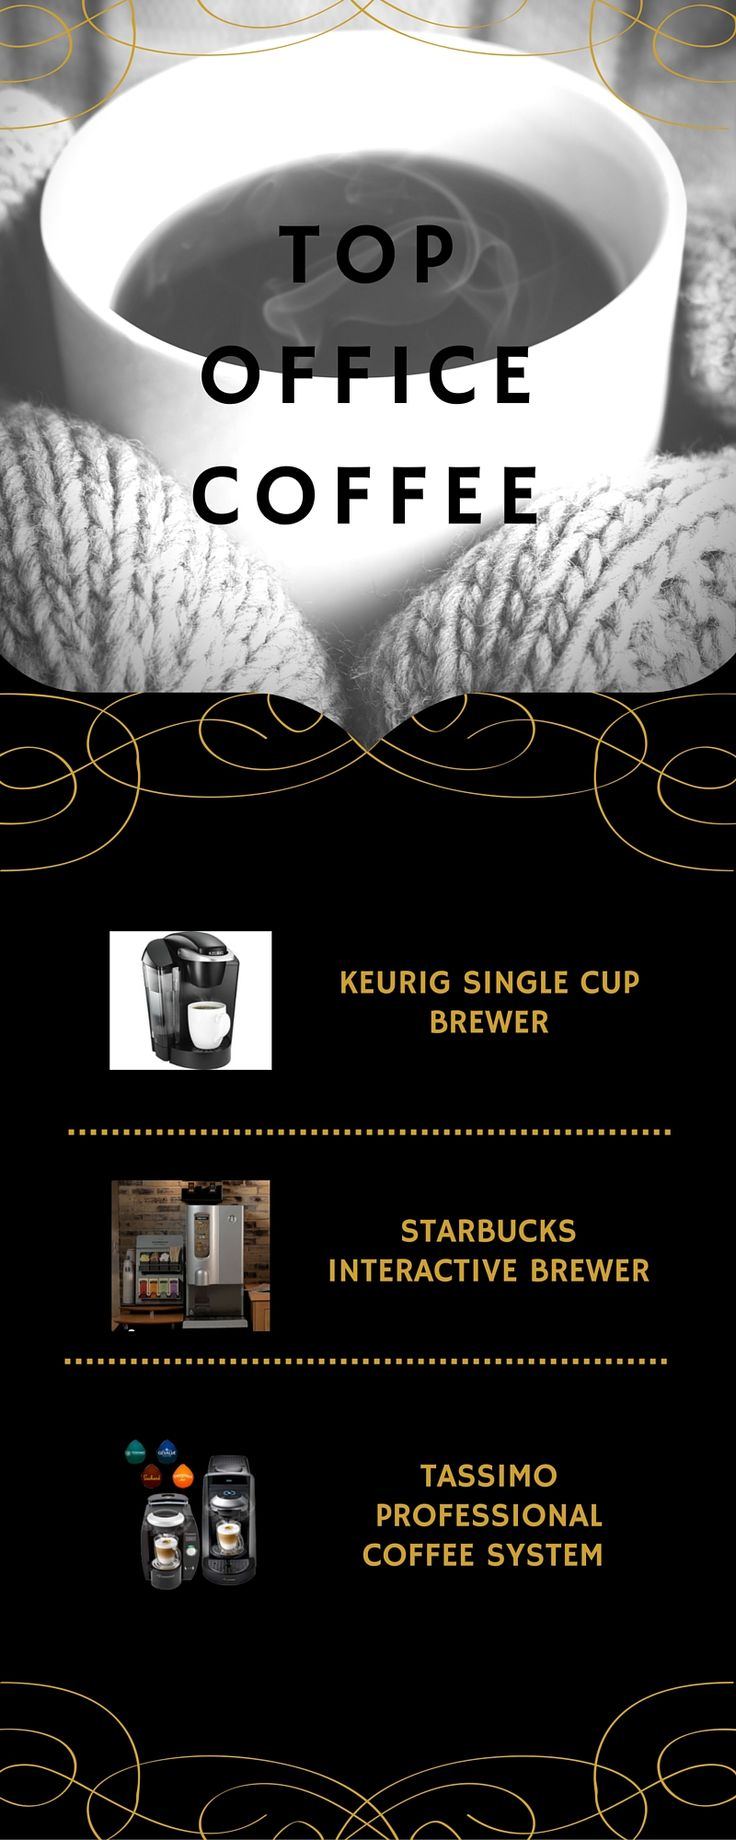 43 best Coffee Services images on Pinterest | Drinks, Hot chocolate ...